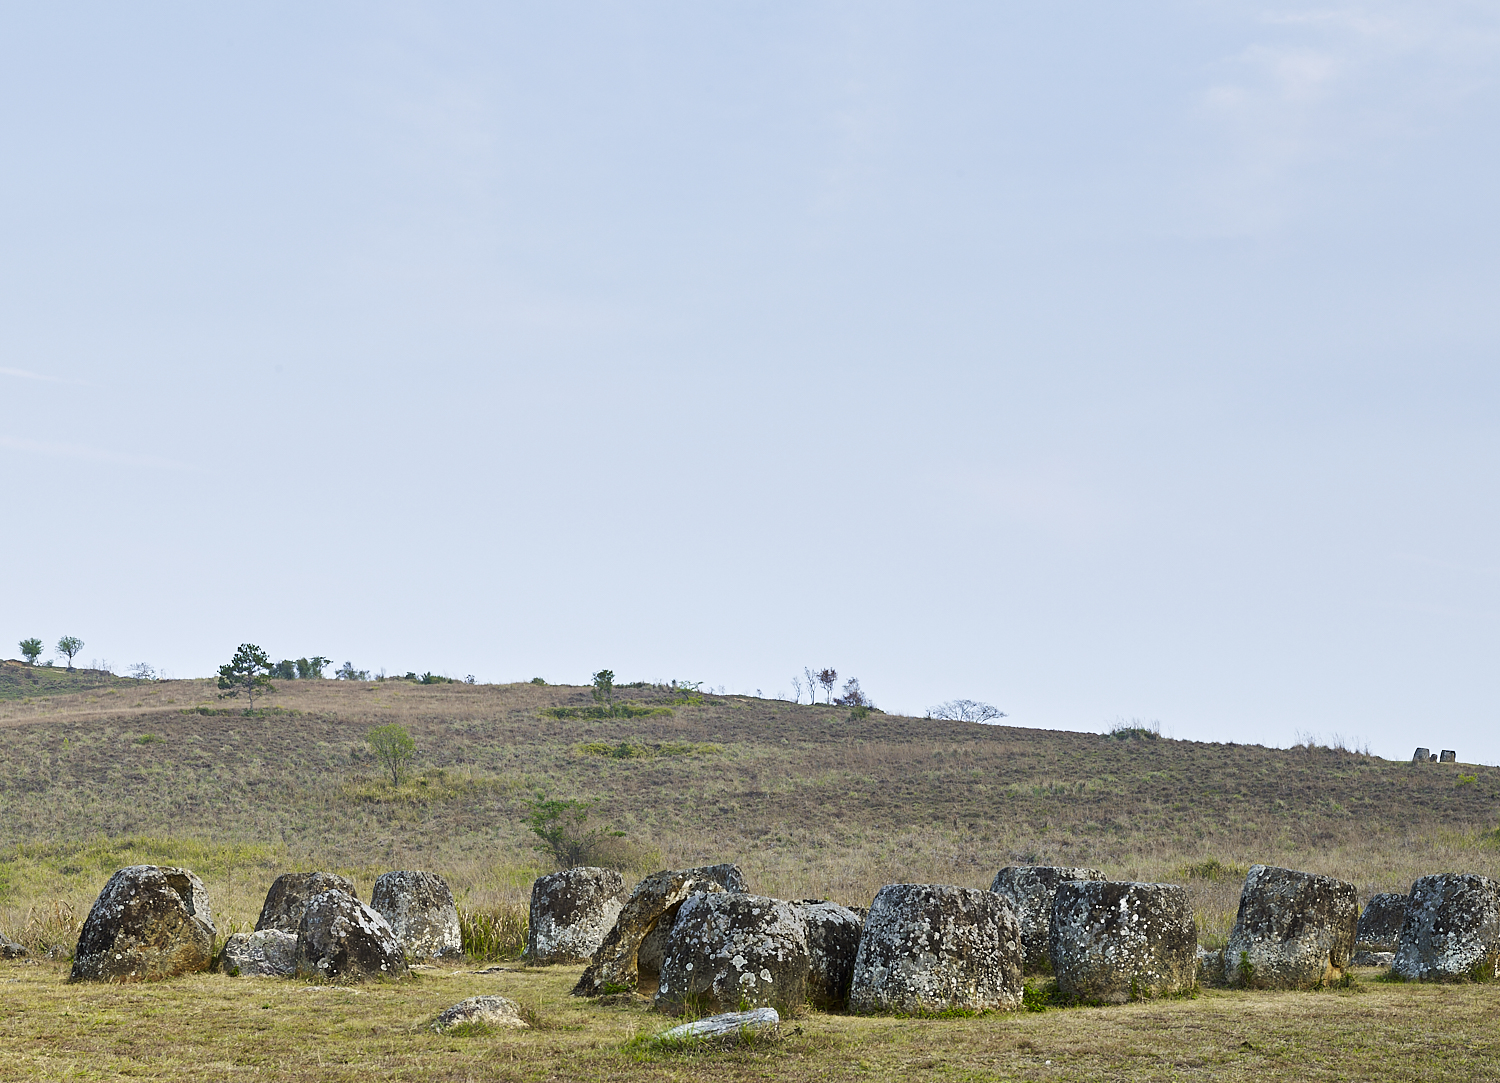 Jars, Plain of Jars, Xiang Khouang Plateau, Laos, 2016